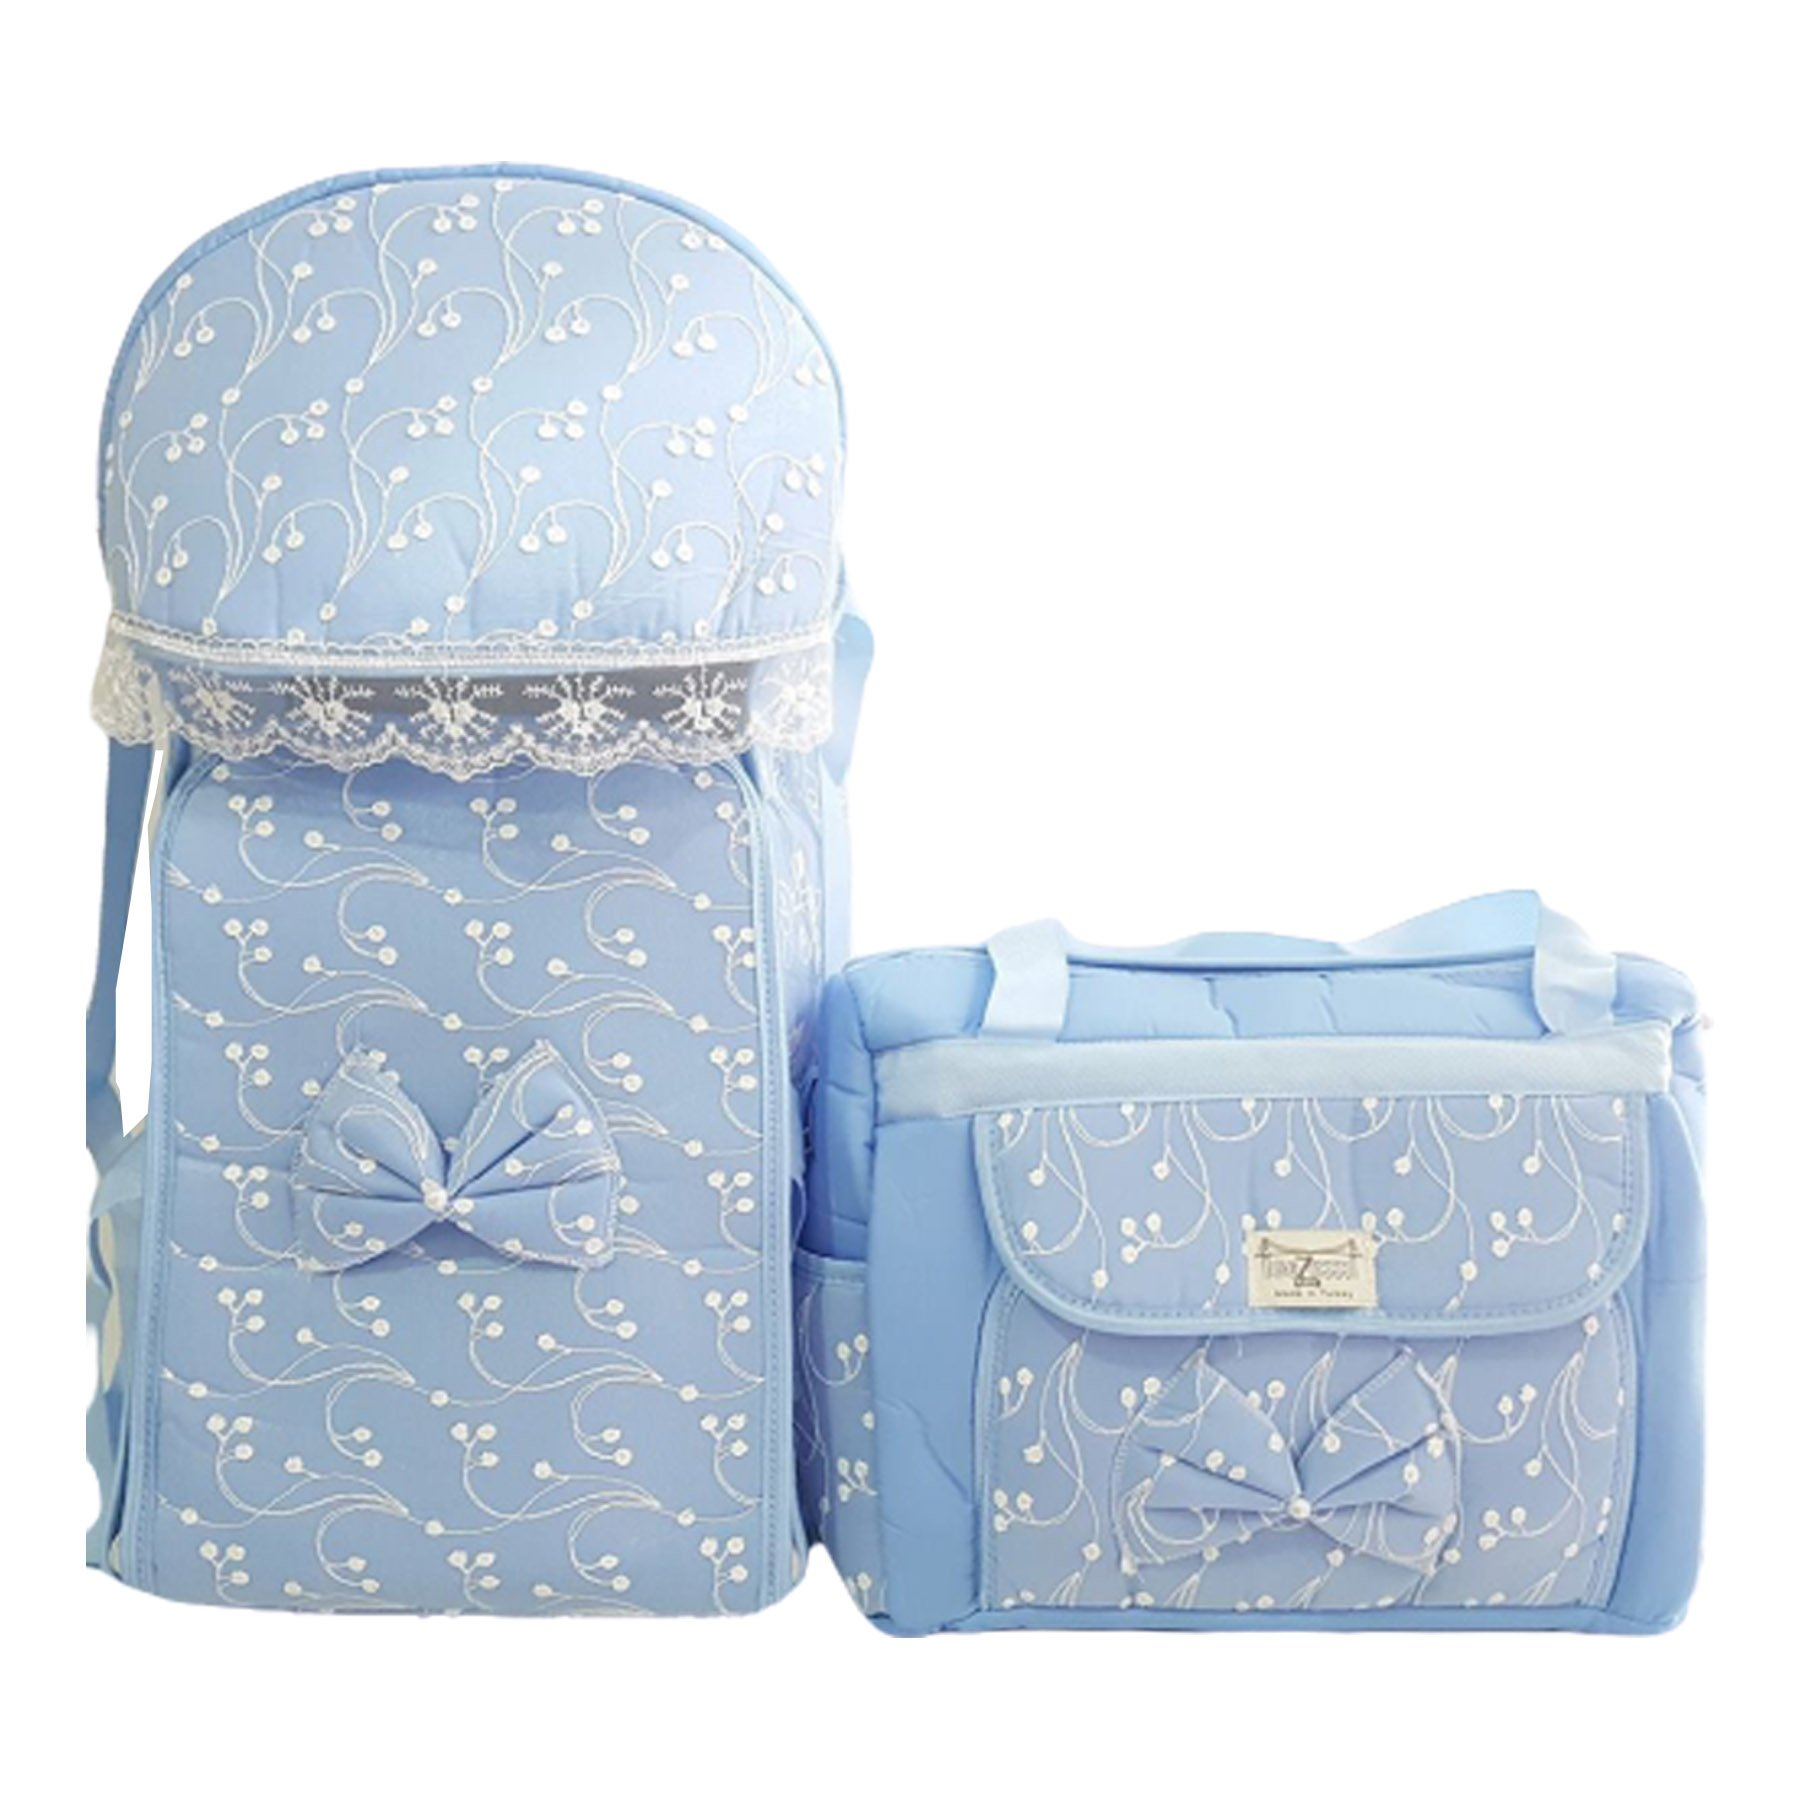 Baby Carrier Bag Lacy Blue Luxury 2 Pack Baby Boy Carrier Set - Baby Accessory- Baby Boy- Gift- Carrier Bag